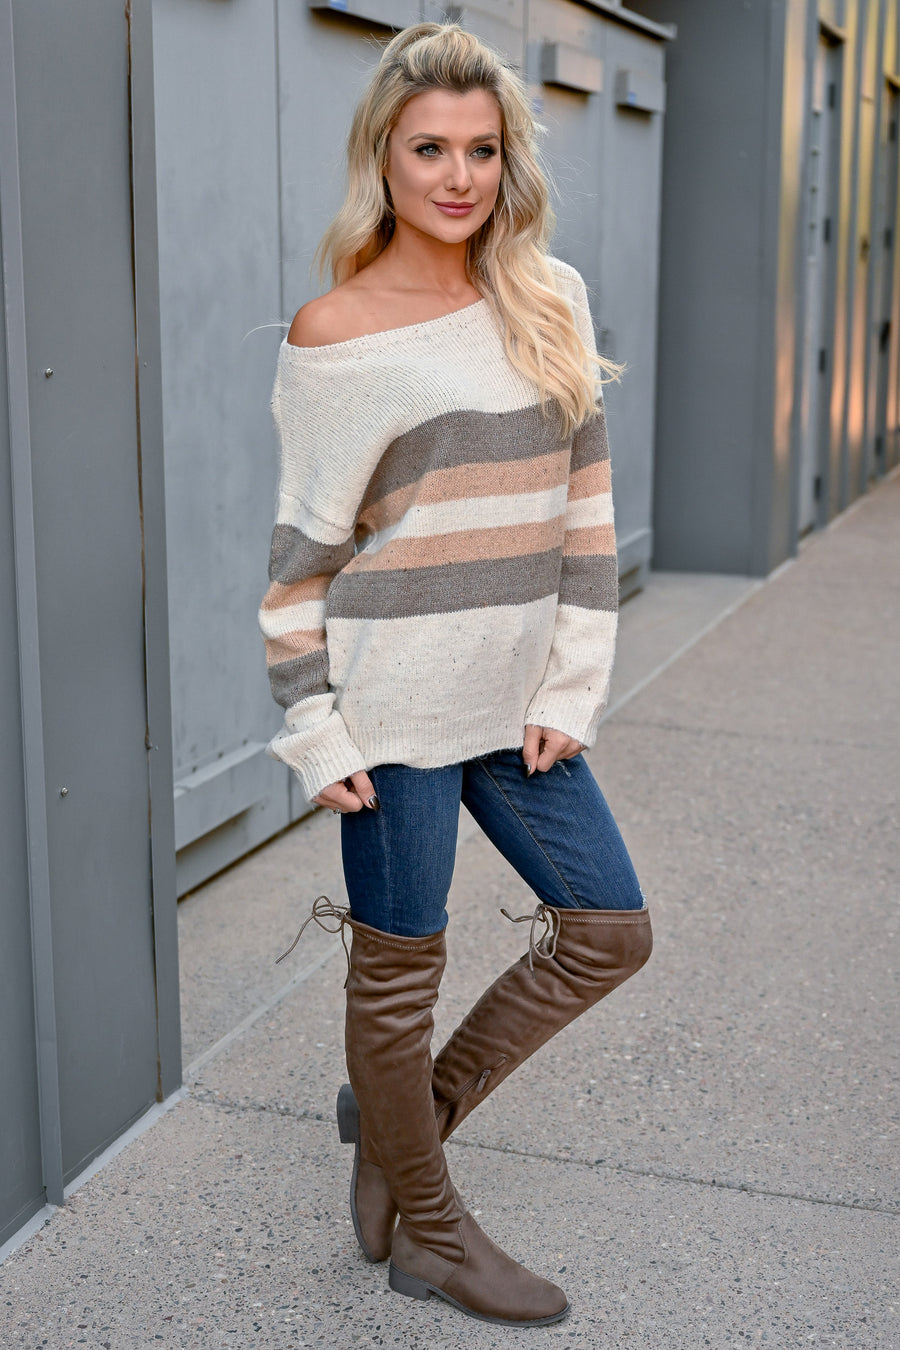 Good To Go Striped Sweater - Ivory womens trendy off the shoulder long sleeve striped sweater closet candy close